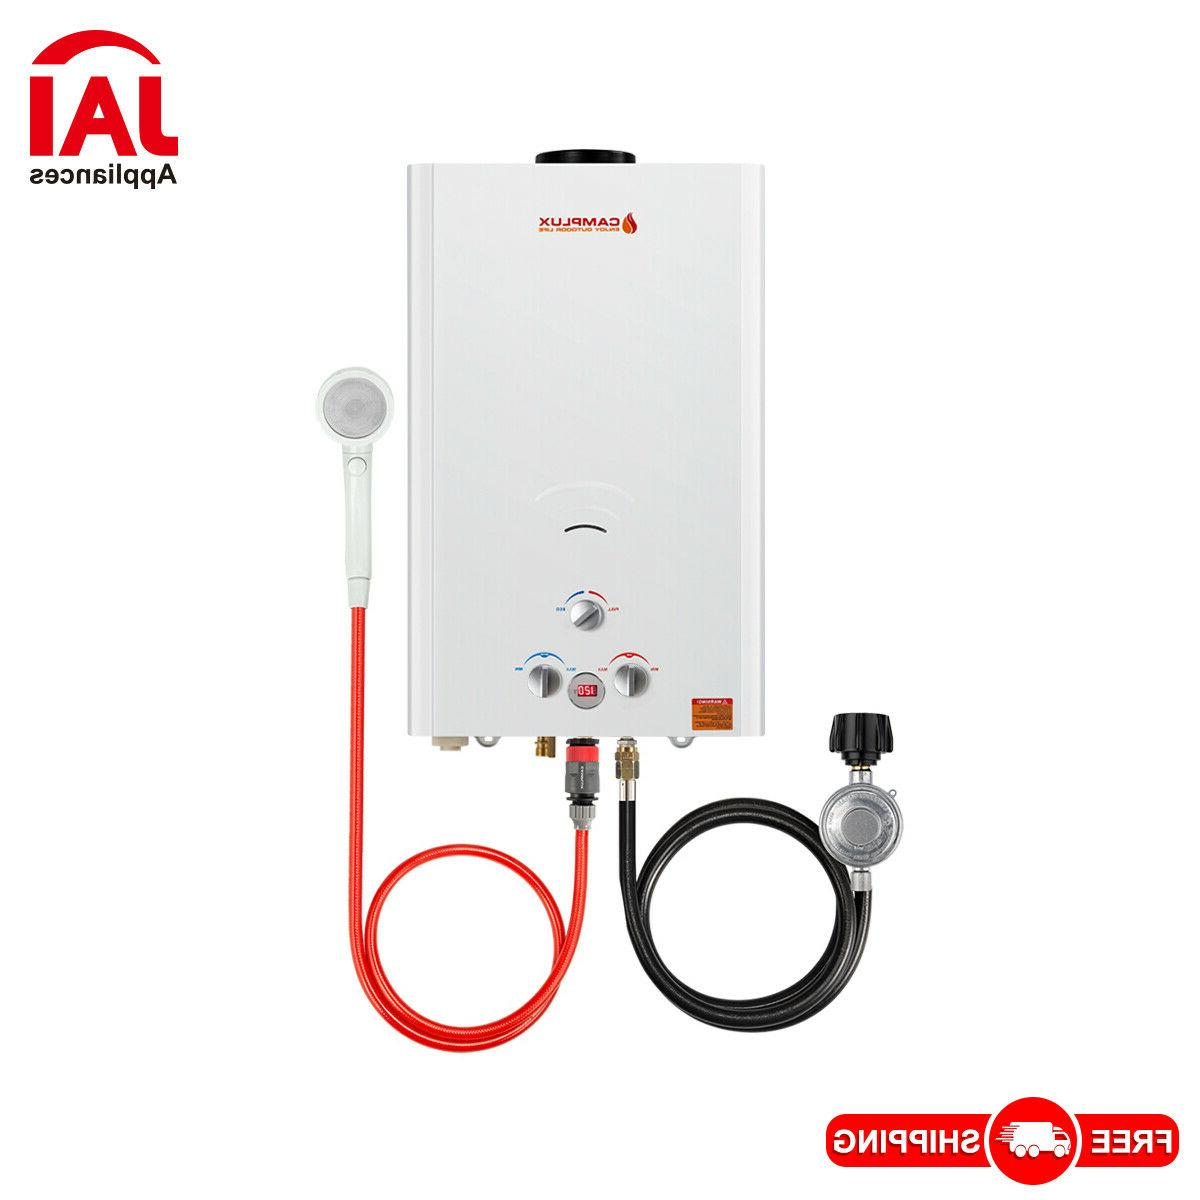 4 22gpm propane gas tankless